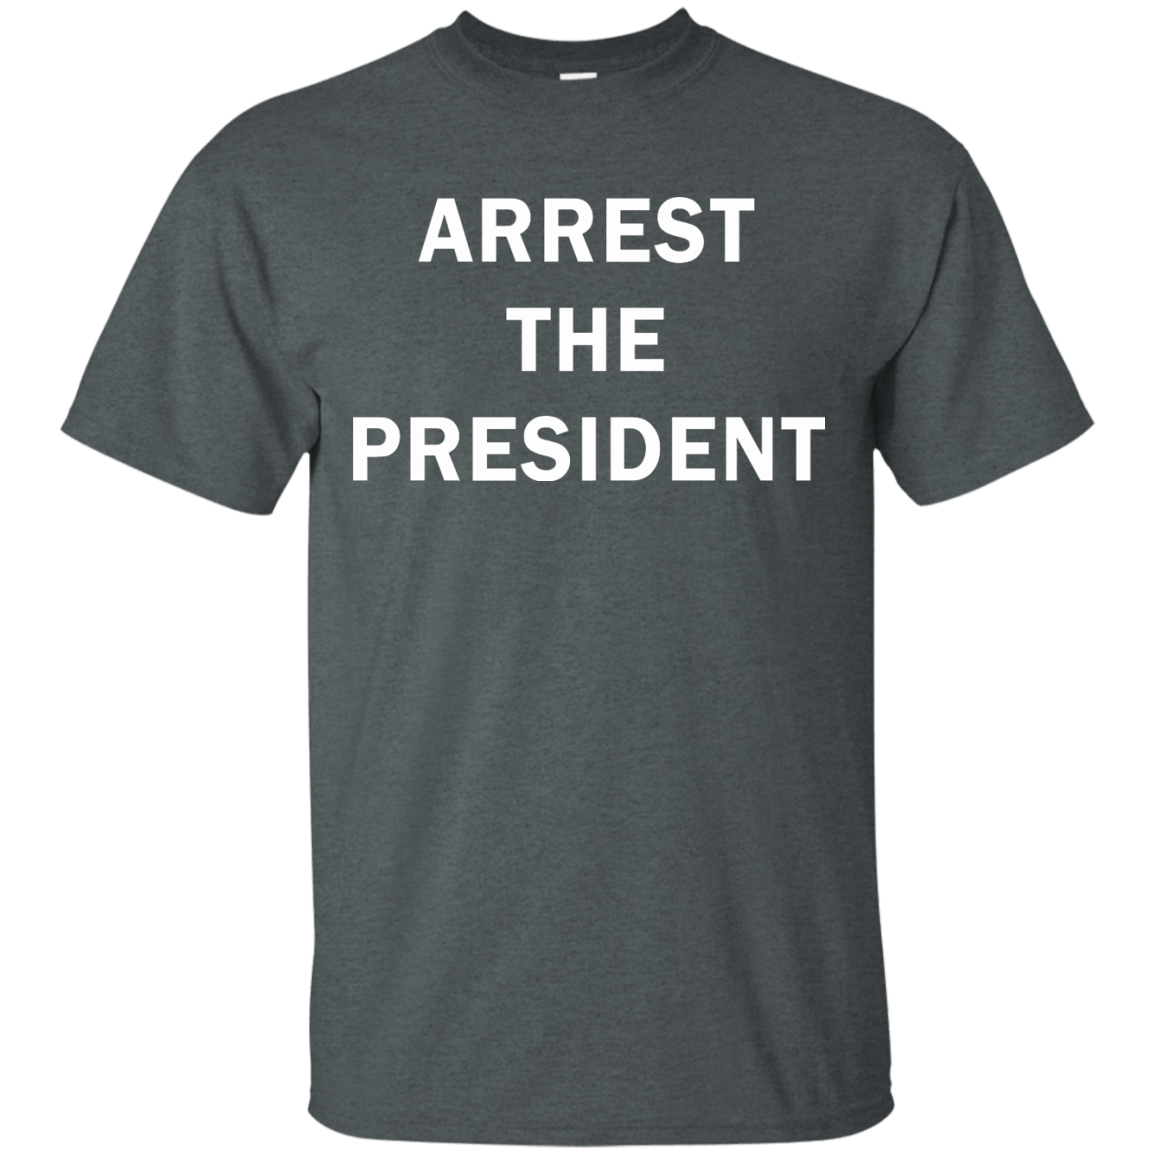 Funny arrest the president t shirt hoodie long sleeve for Ez custom t shirts